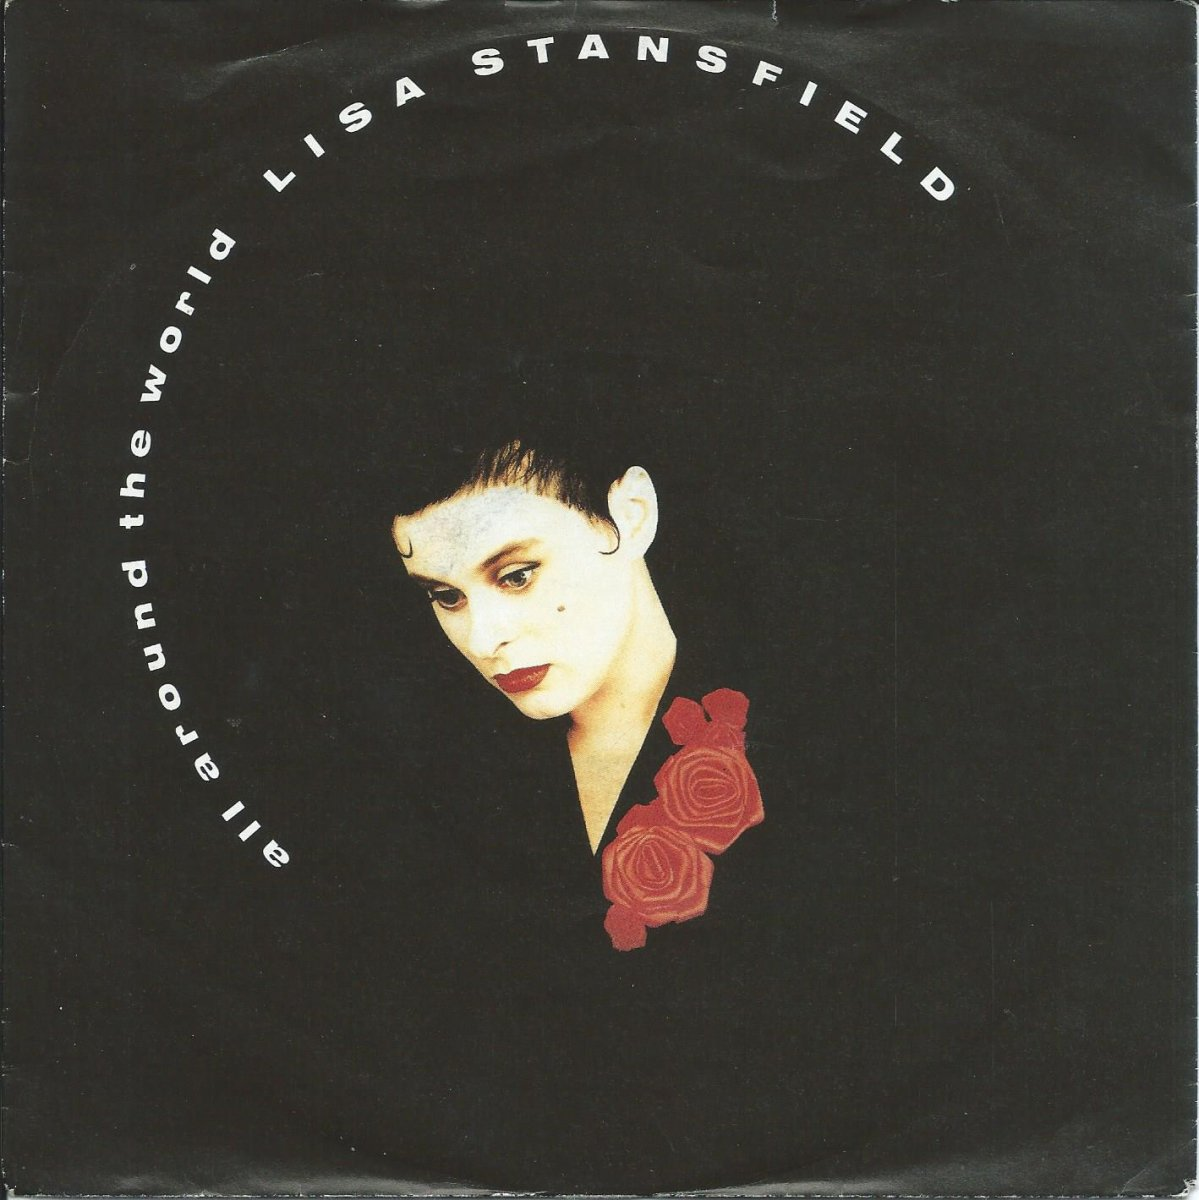 LISA STANSFIELD ‎/ ALL AROUND THE WORLD / WAKE UP BABY (7